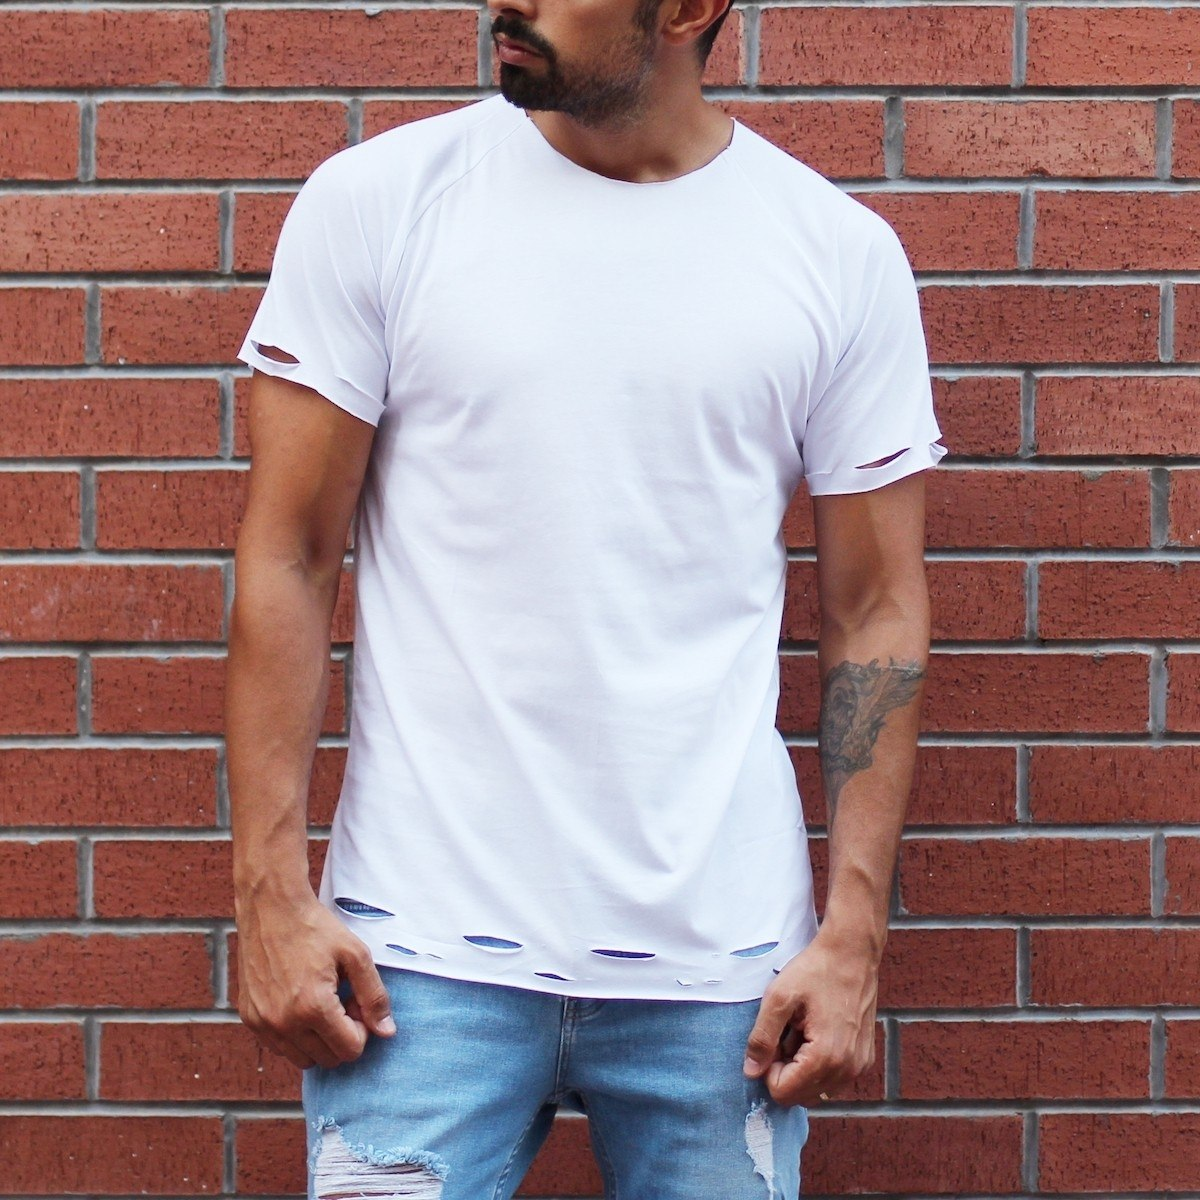 Men's Crew Neck T-Shirt With Rips In White MV T-shirt Collection - 1